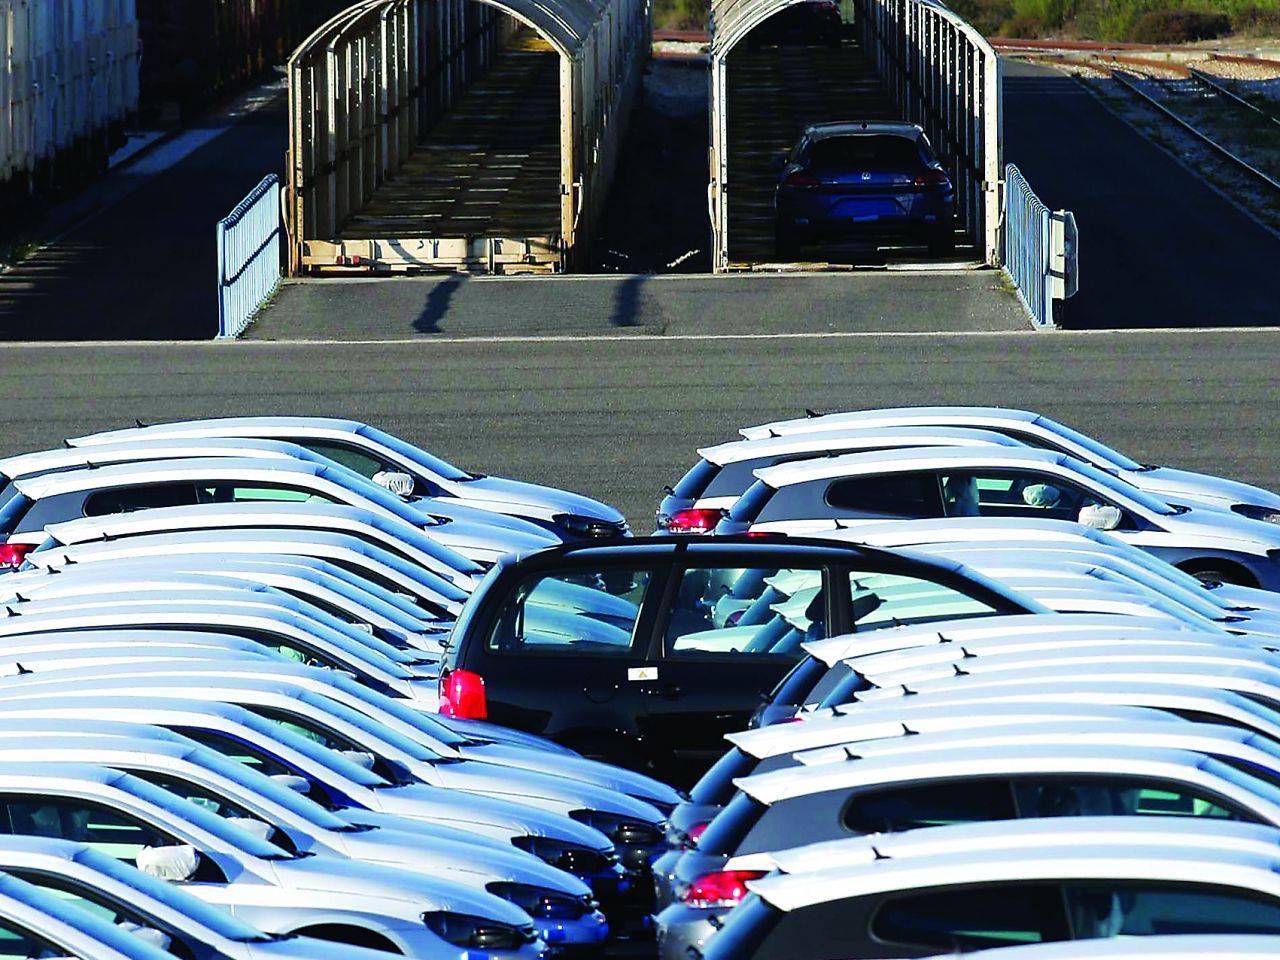 Faster Fines For Rental Car Drivers The Portugal News